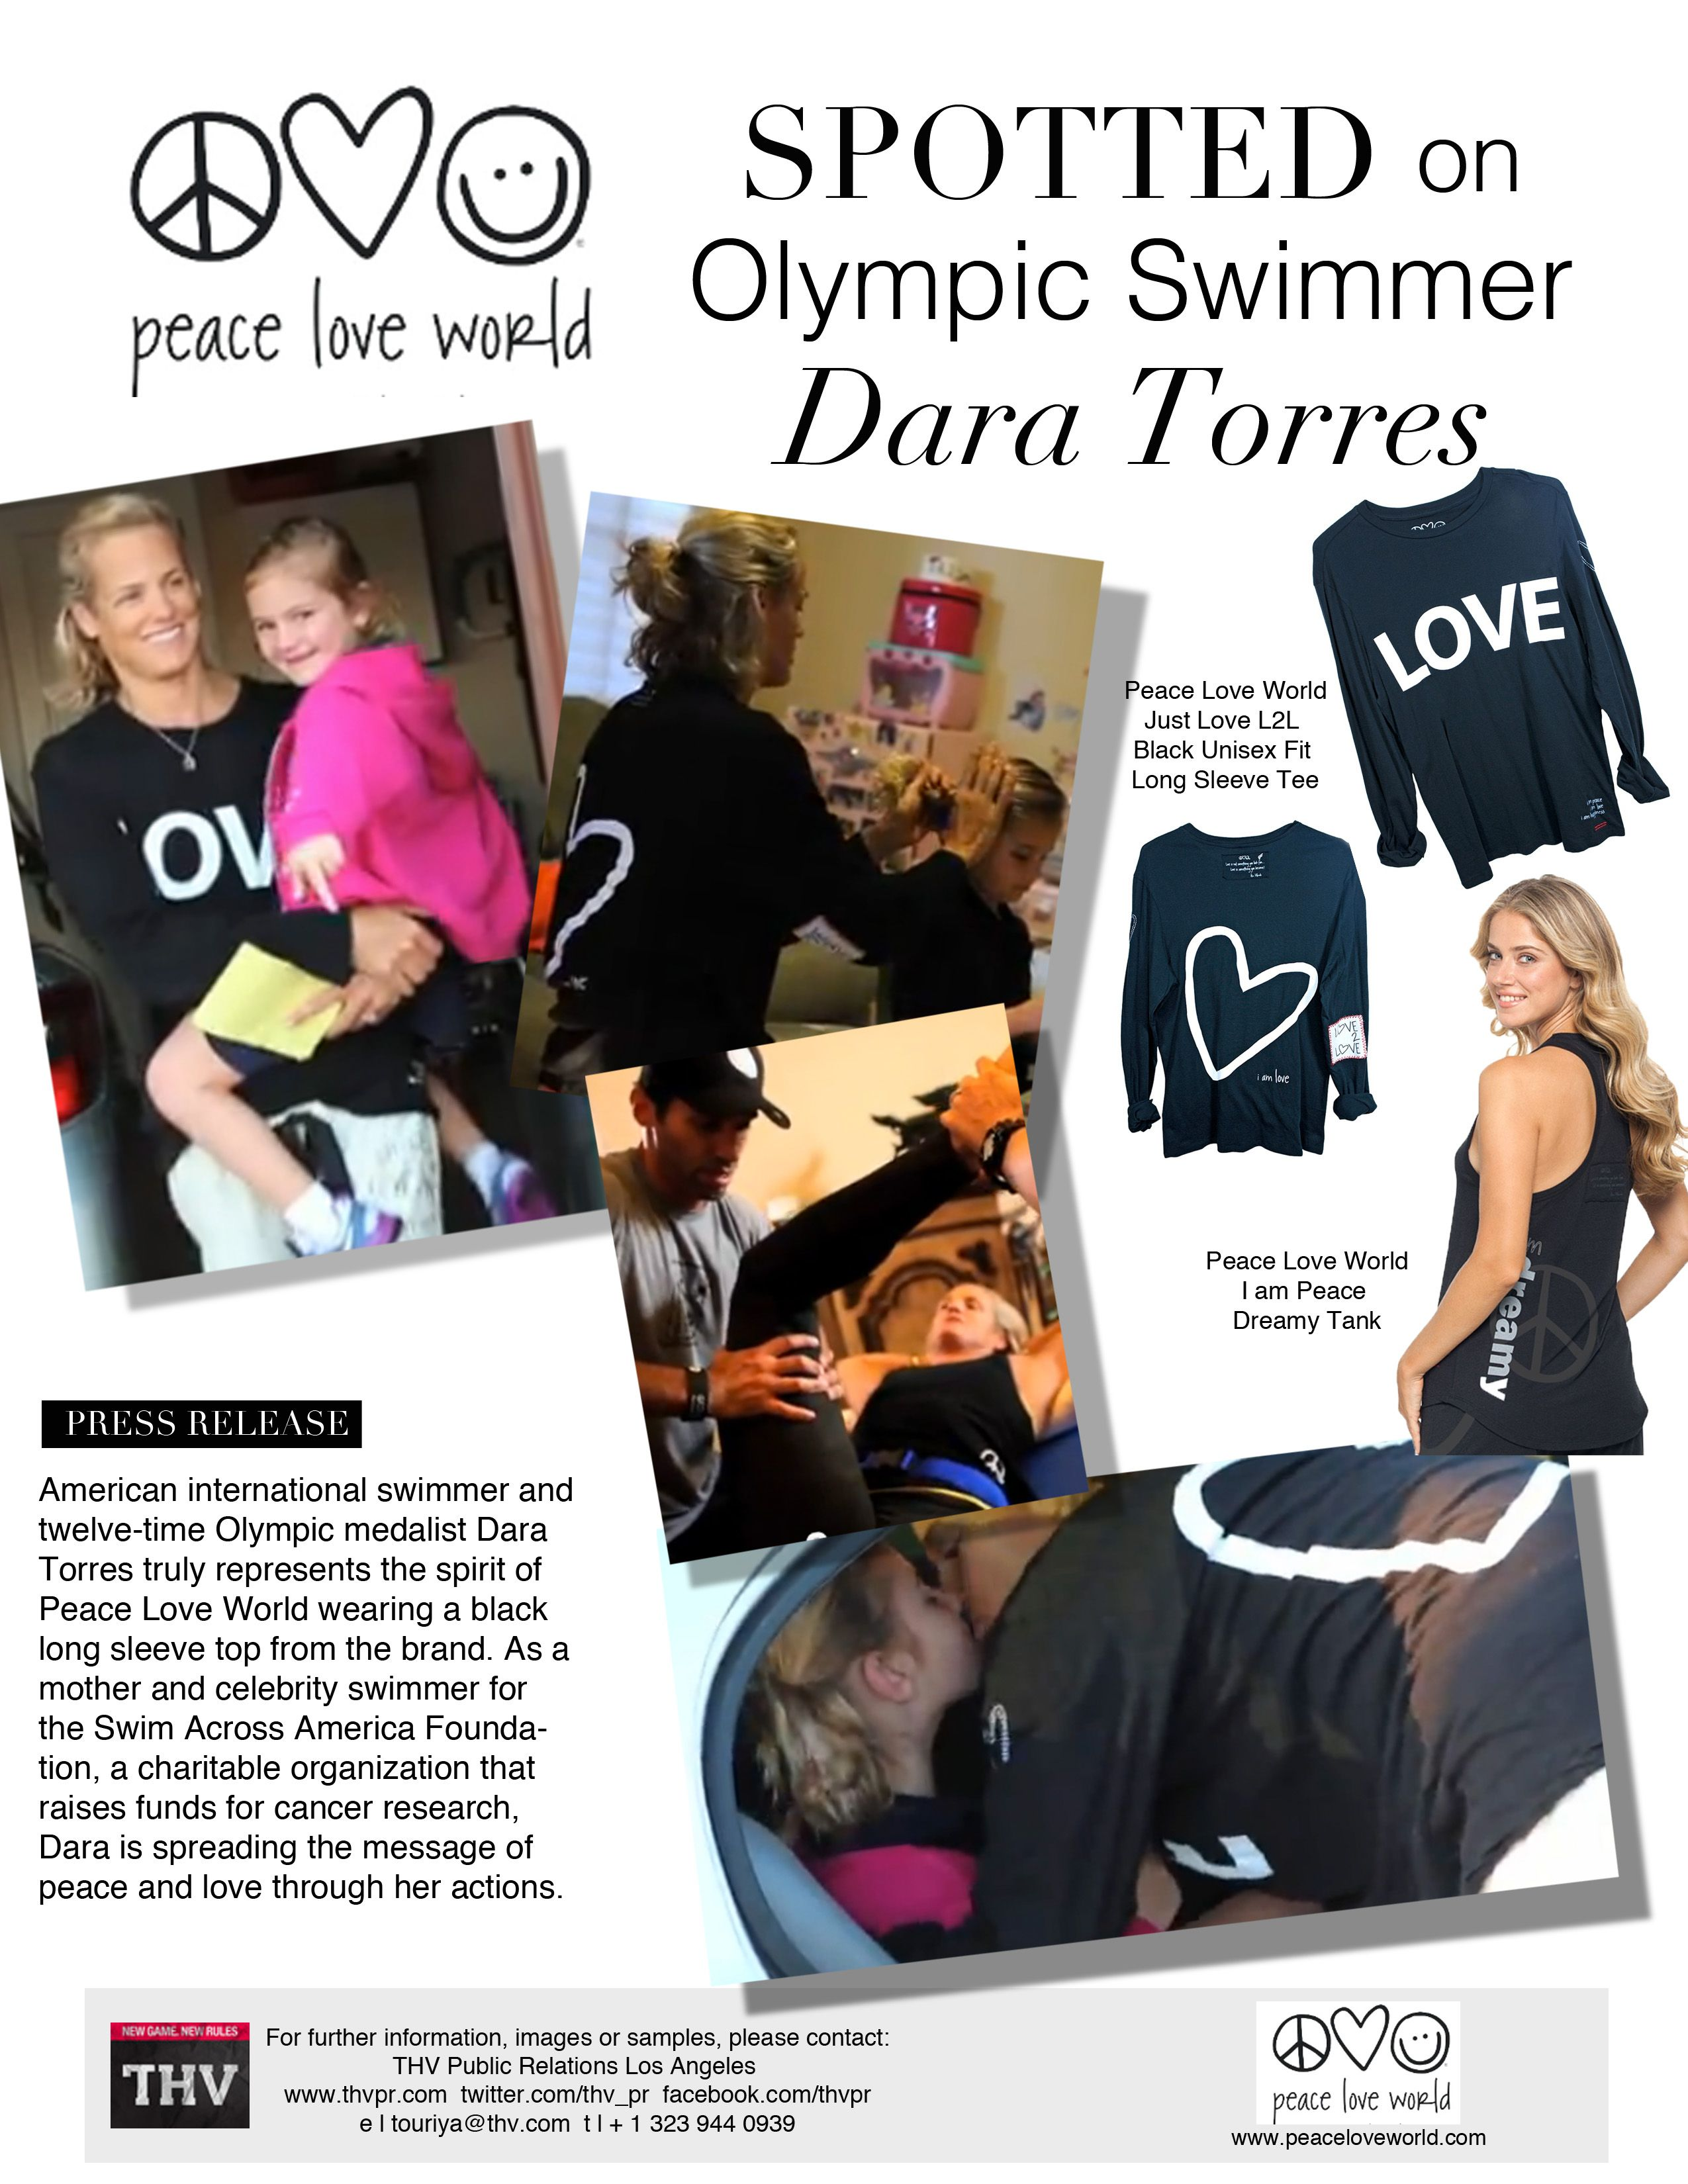 Olympic Swimmer Dara Torres Spotted With Her Daughter Wearing A Peace Love World Top From The